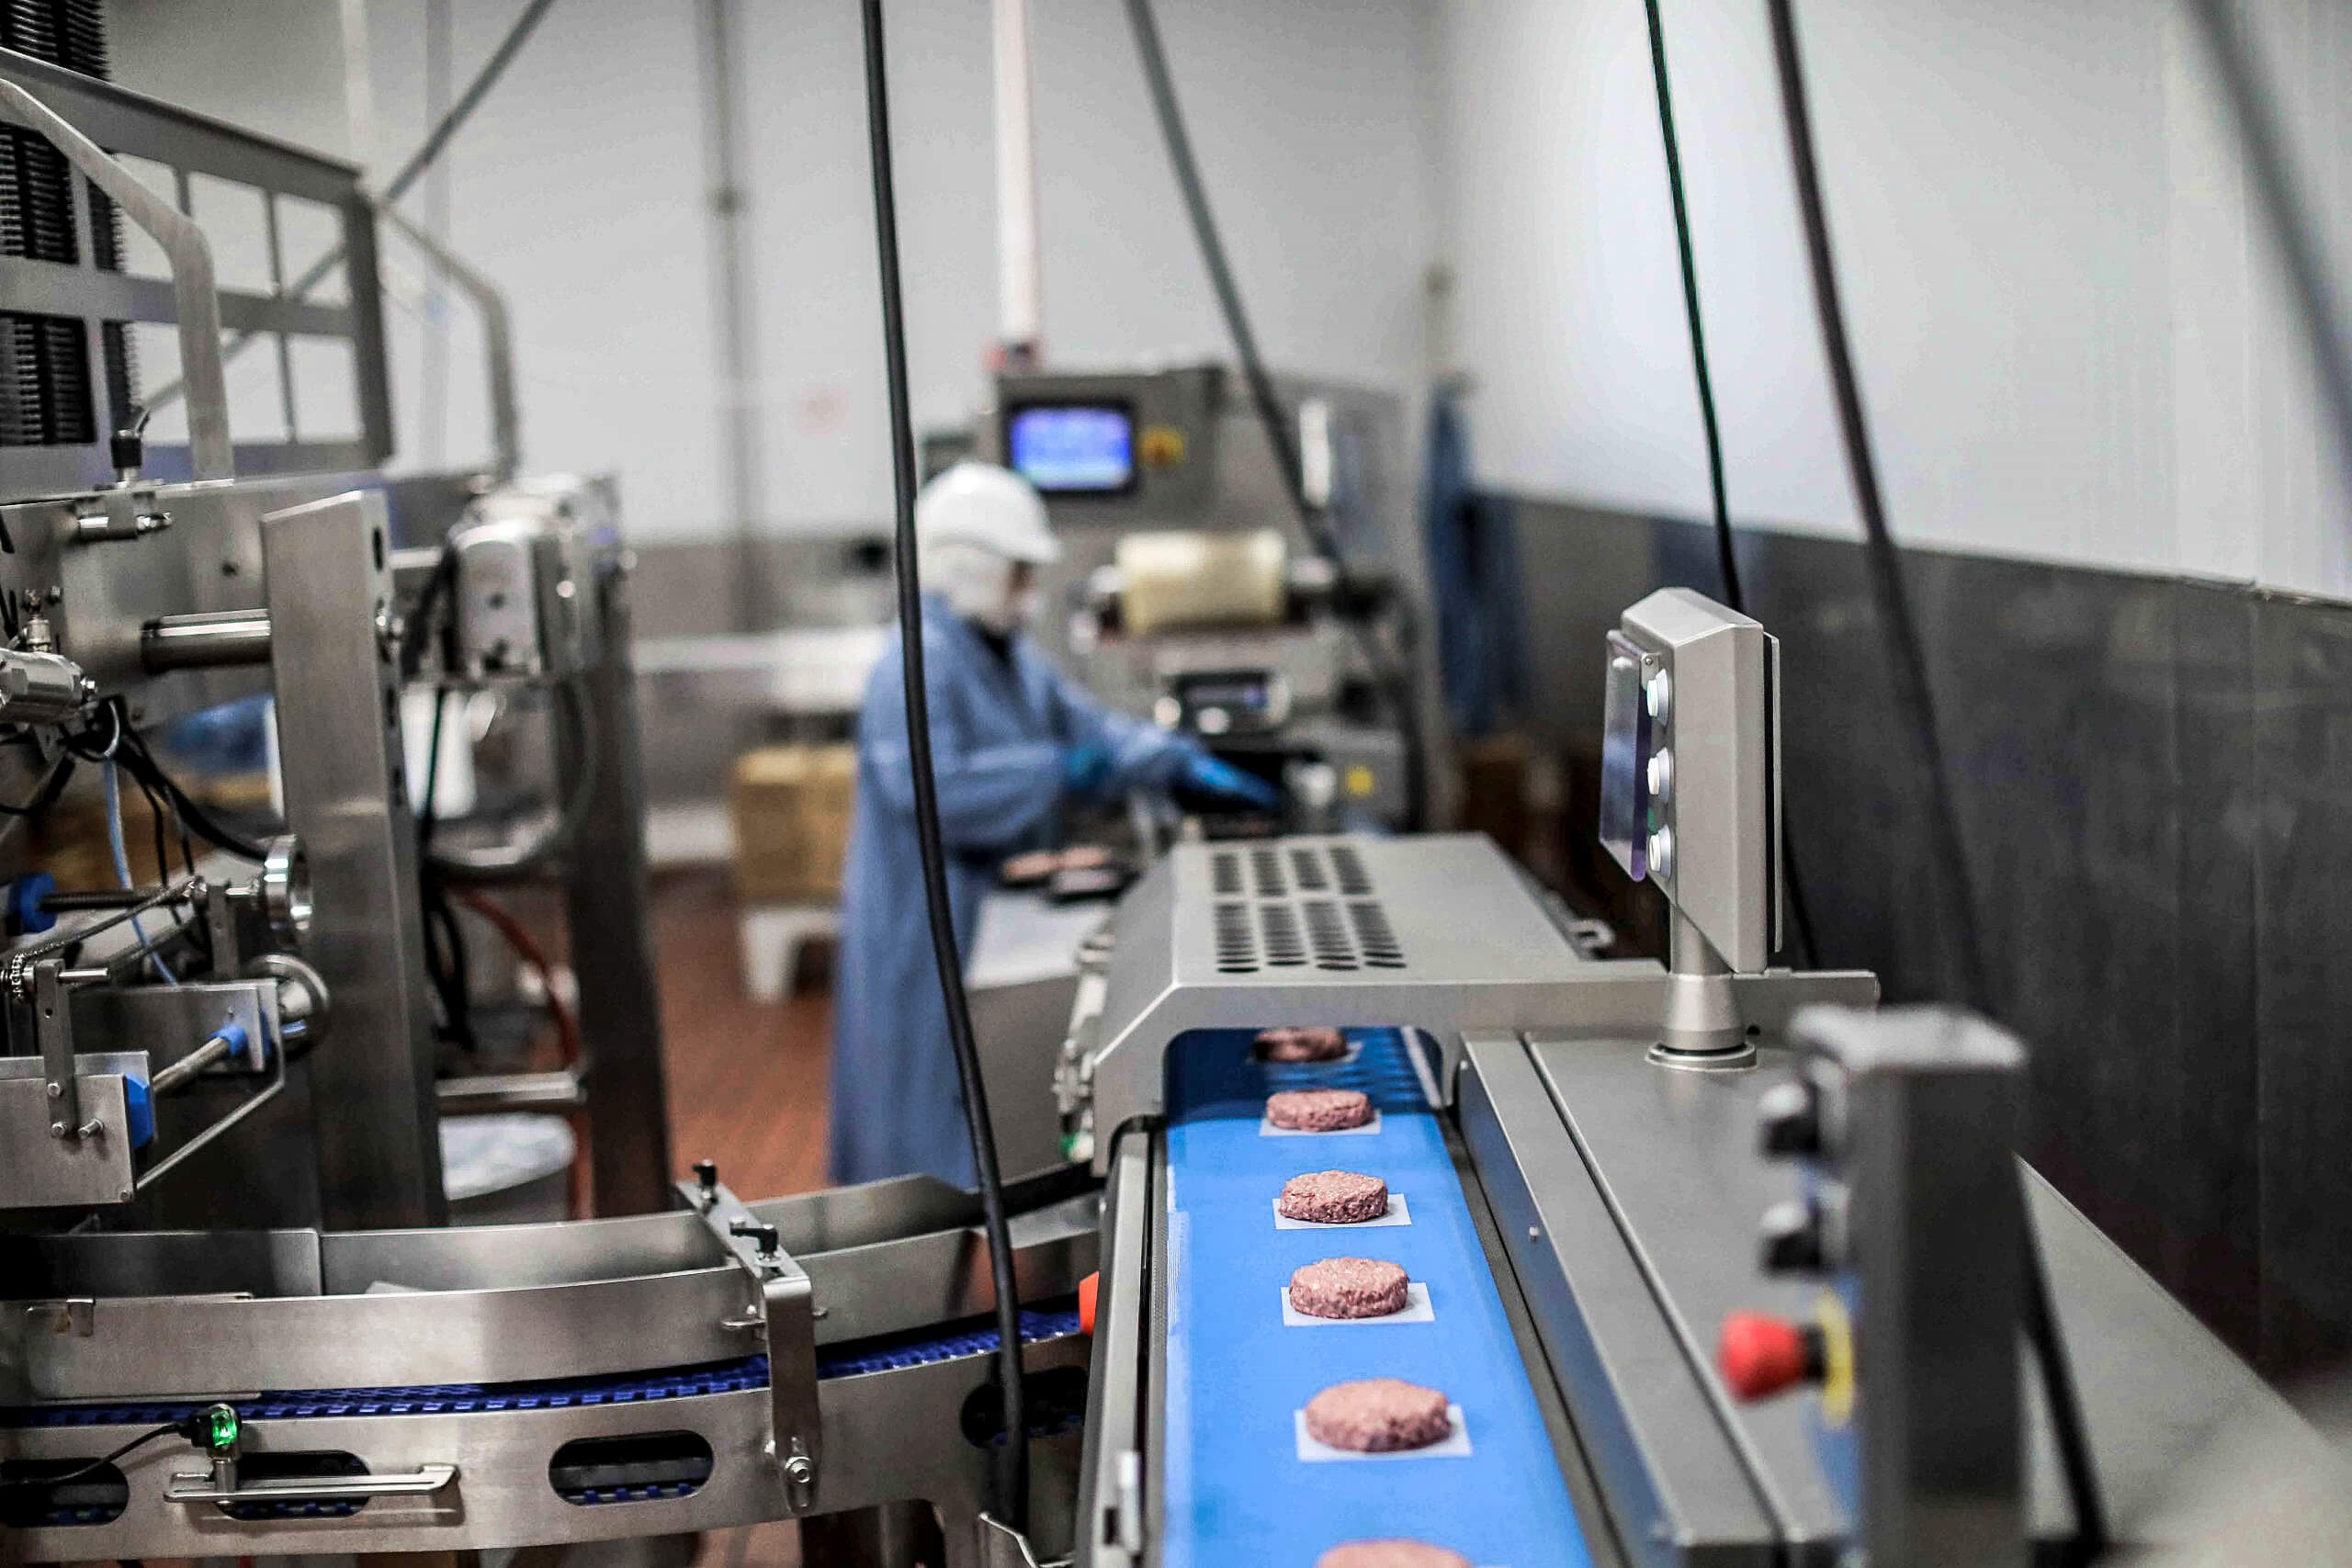 How are plant-based burger patties produced? Inside the beyond meat production